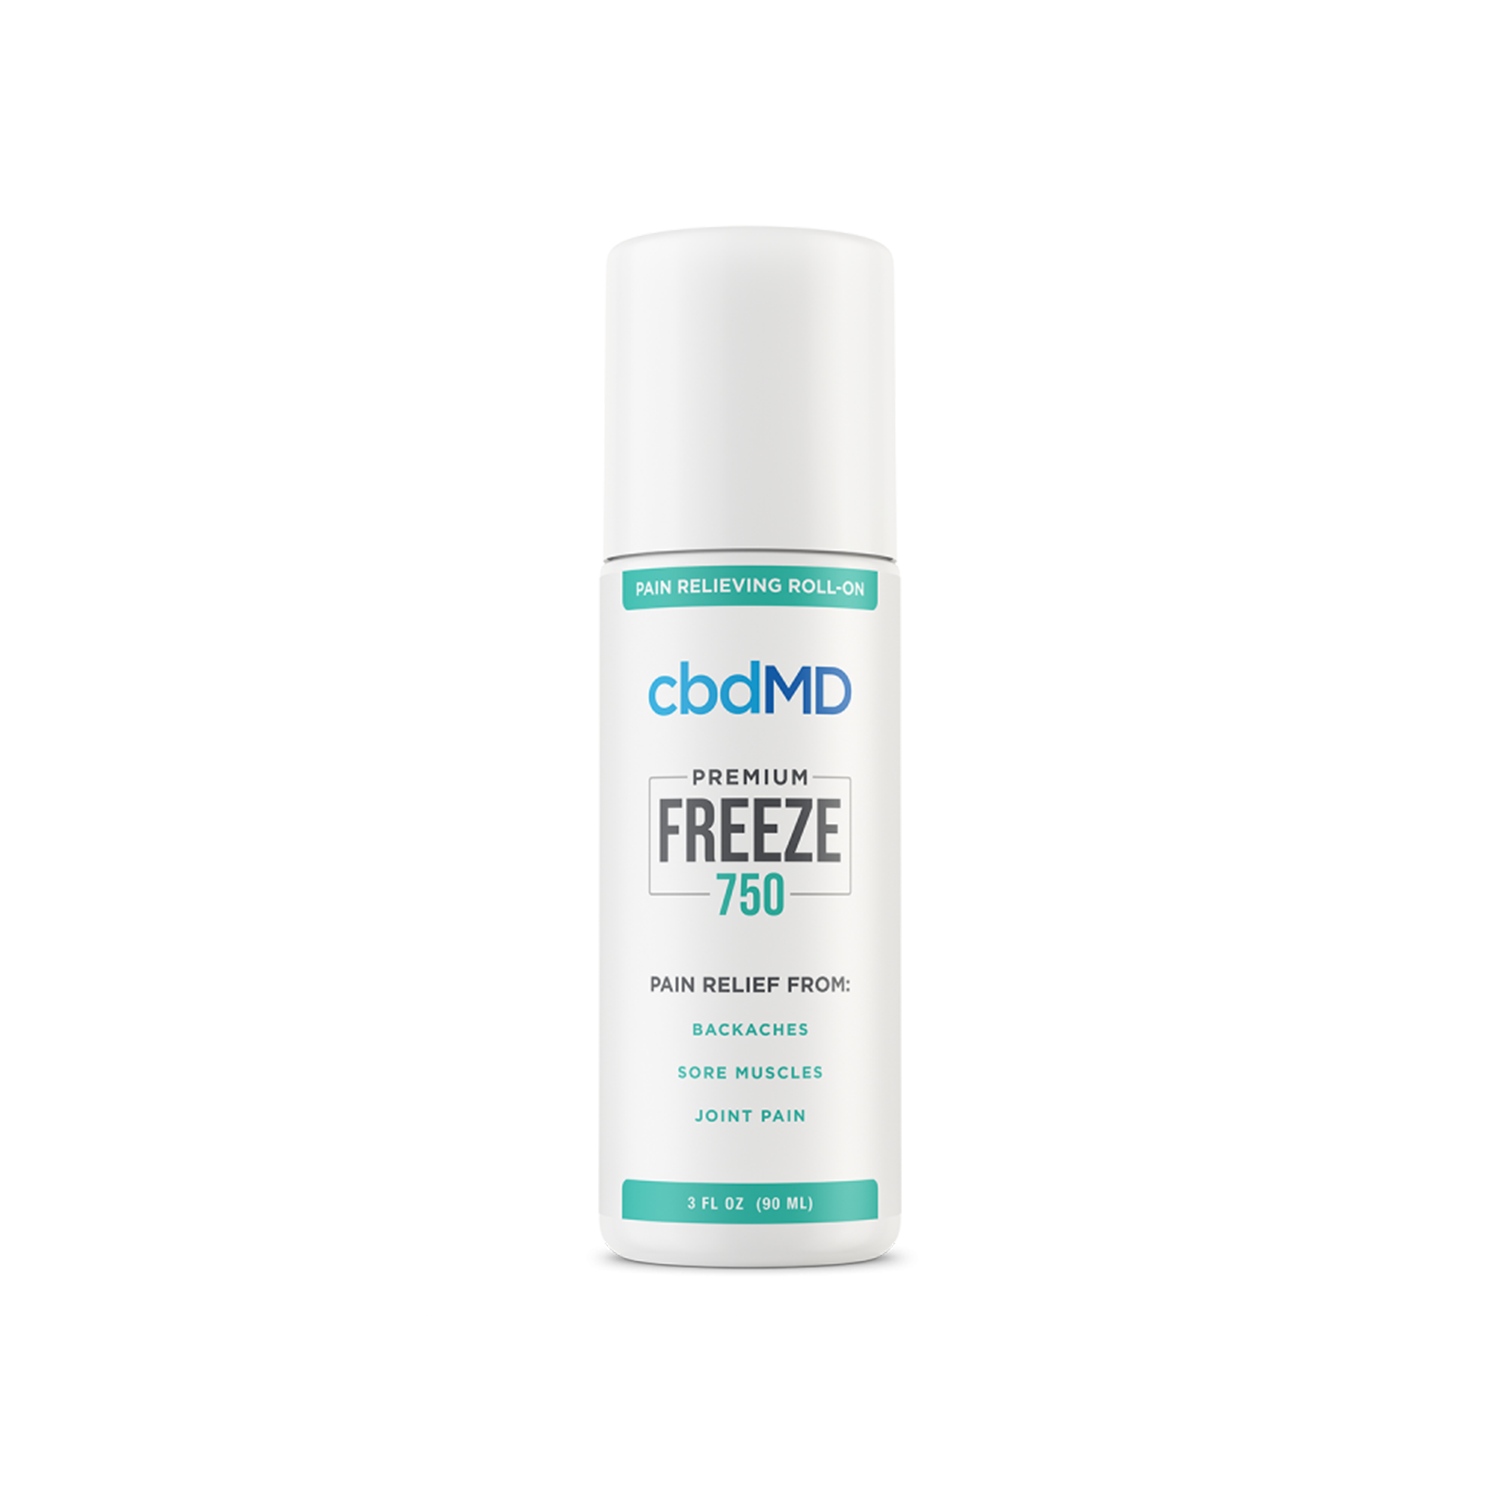 CBDMD Freeze Roller | 750mg - Broad Spectrum